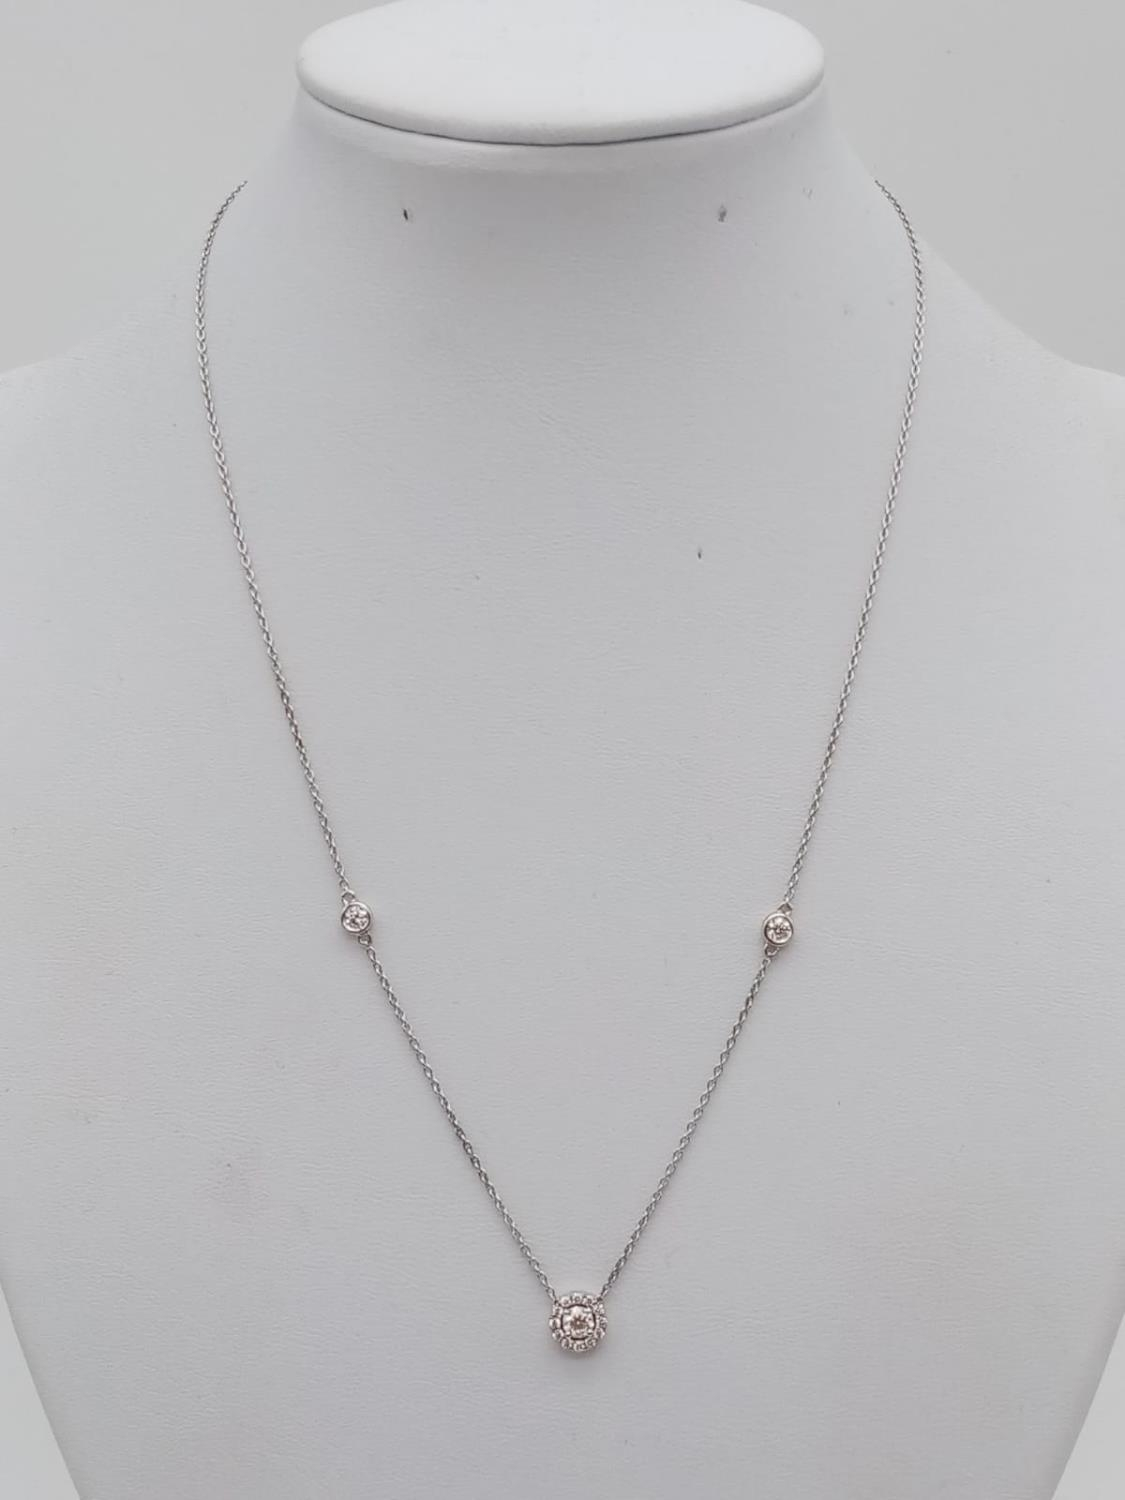 An elegant 14k white gold diamond necklace, weight 2.5g and approx 0.50ct diamonds chain 43cm long - Image 2 of 5